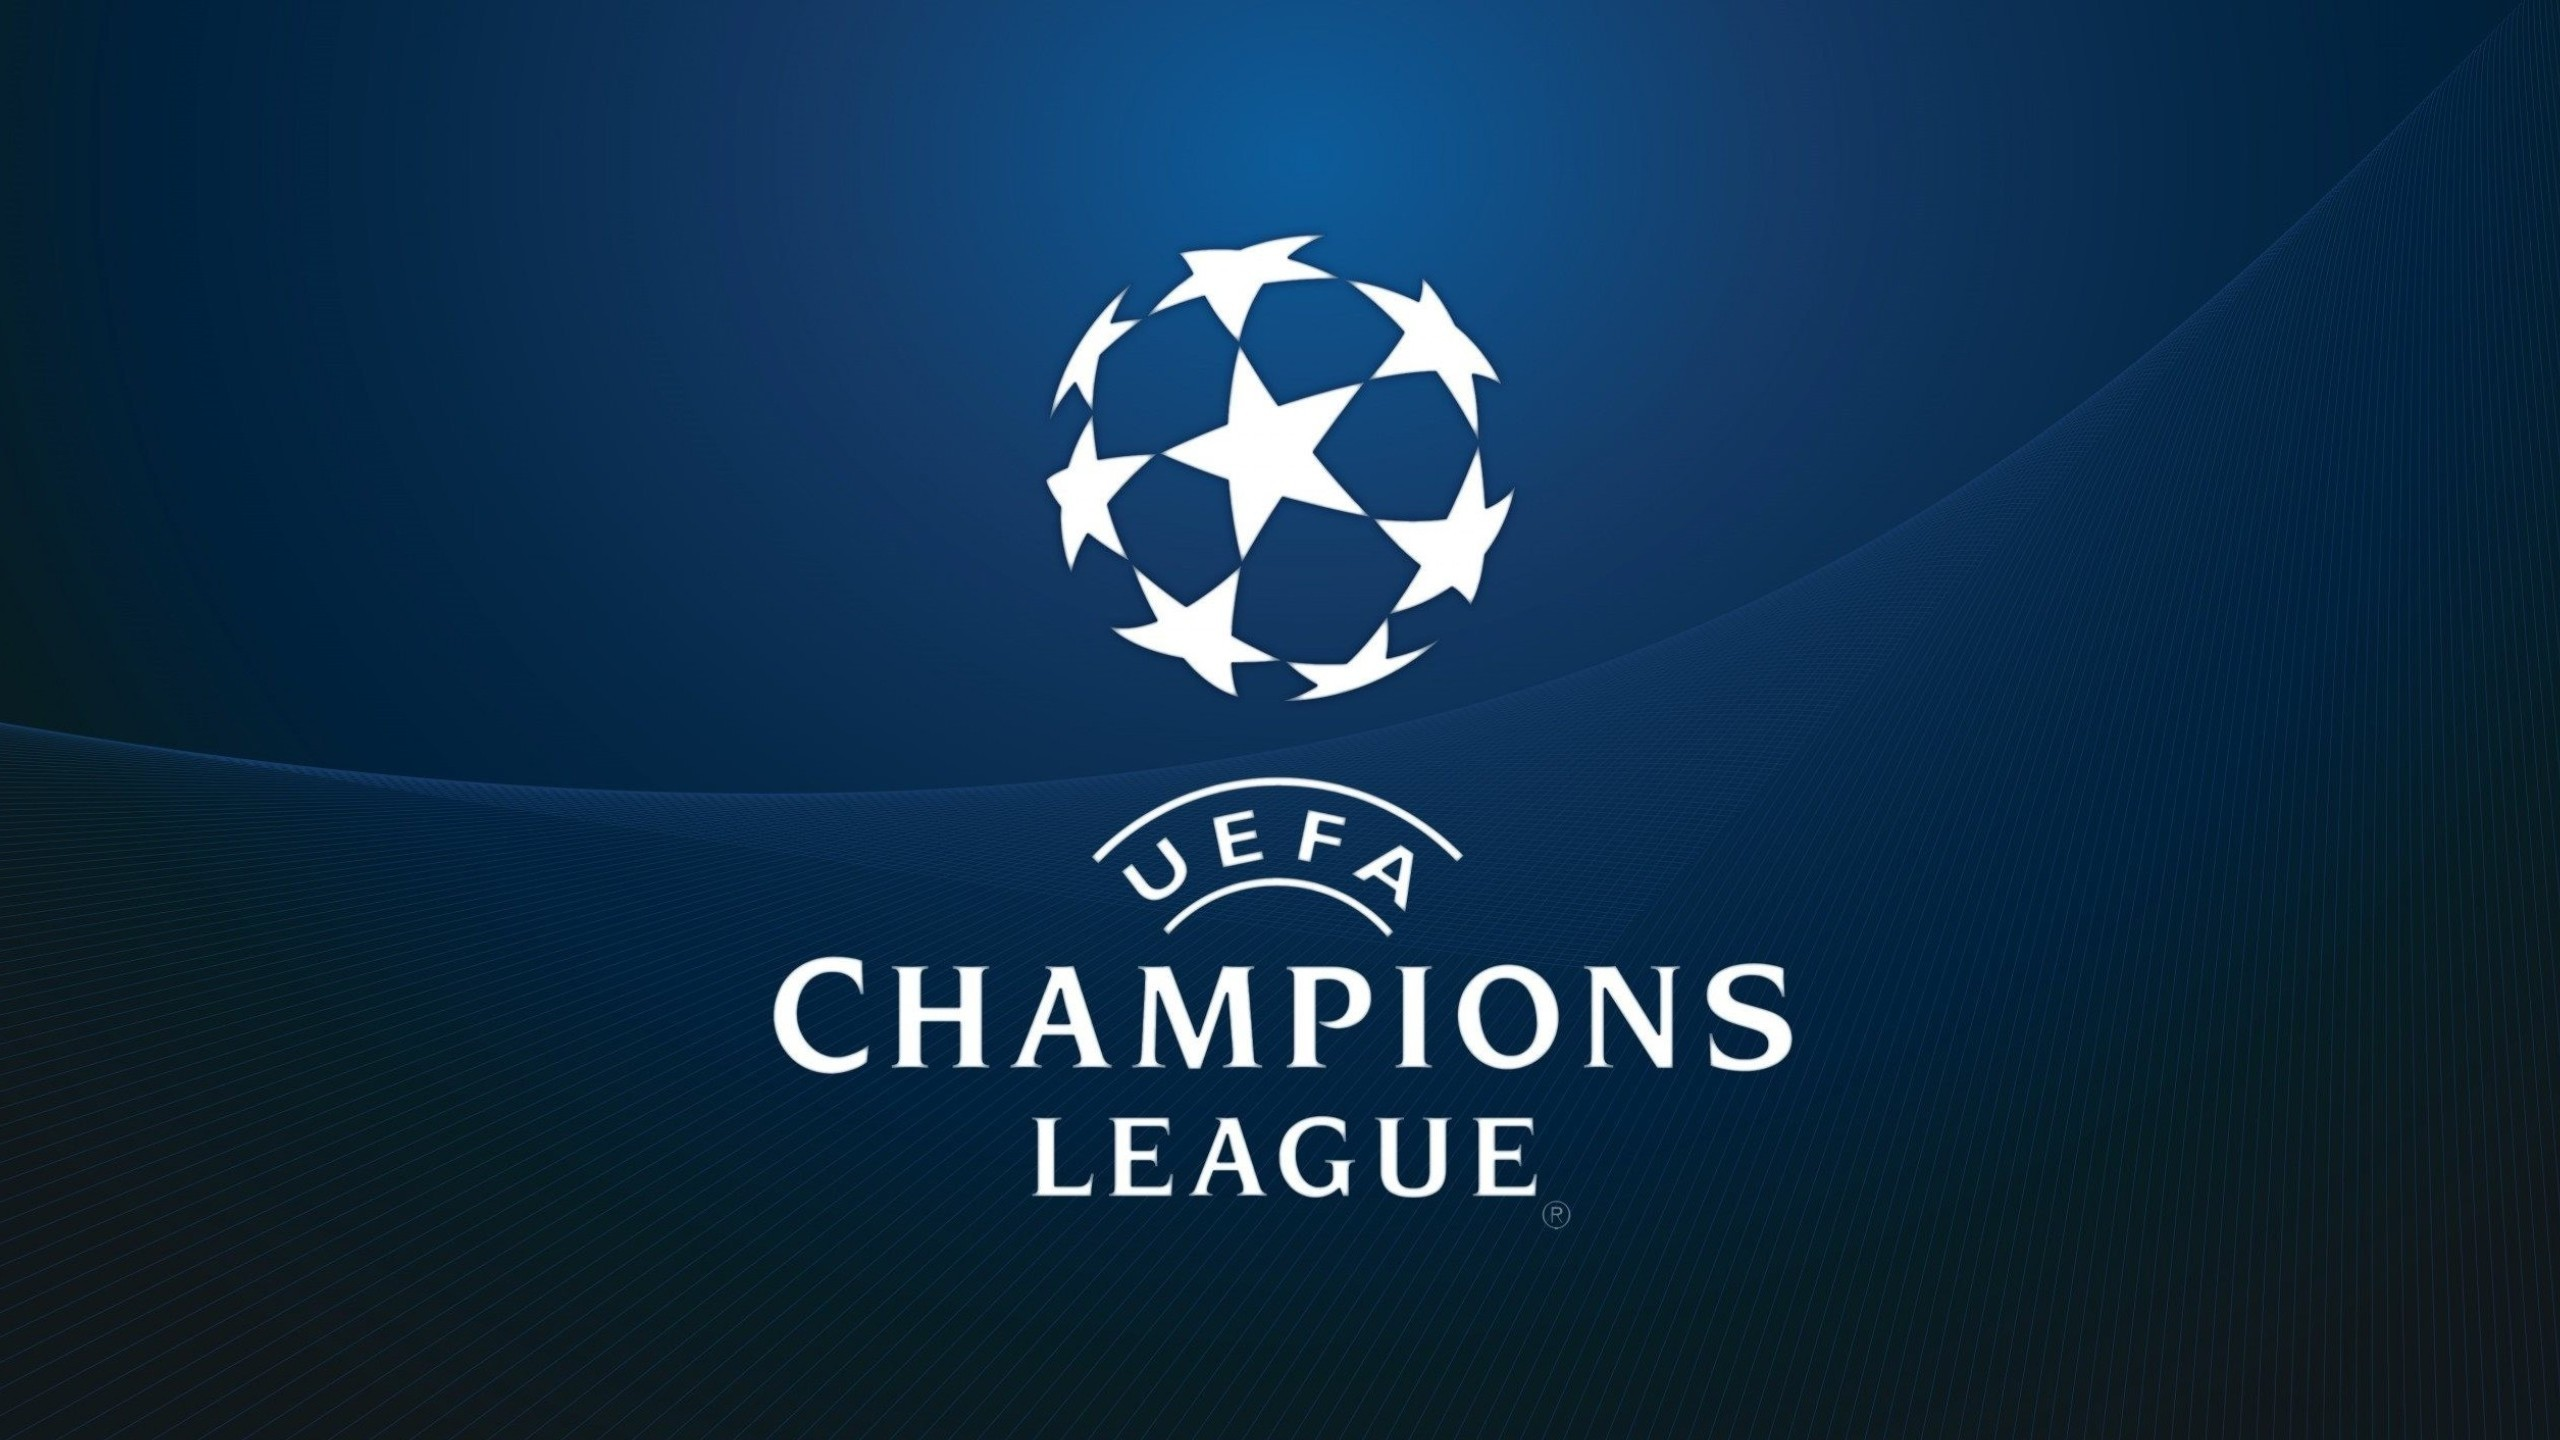 Champions League Gallery